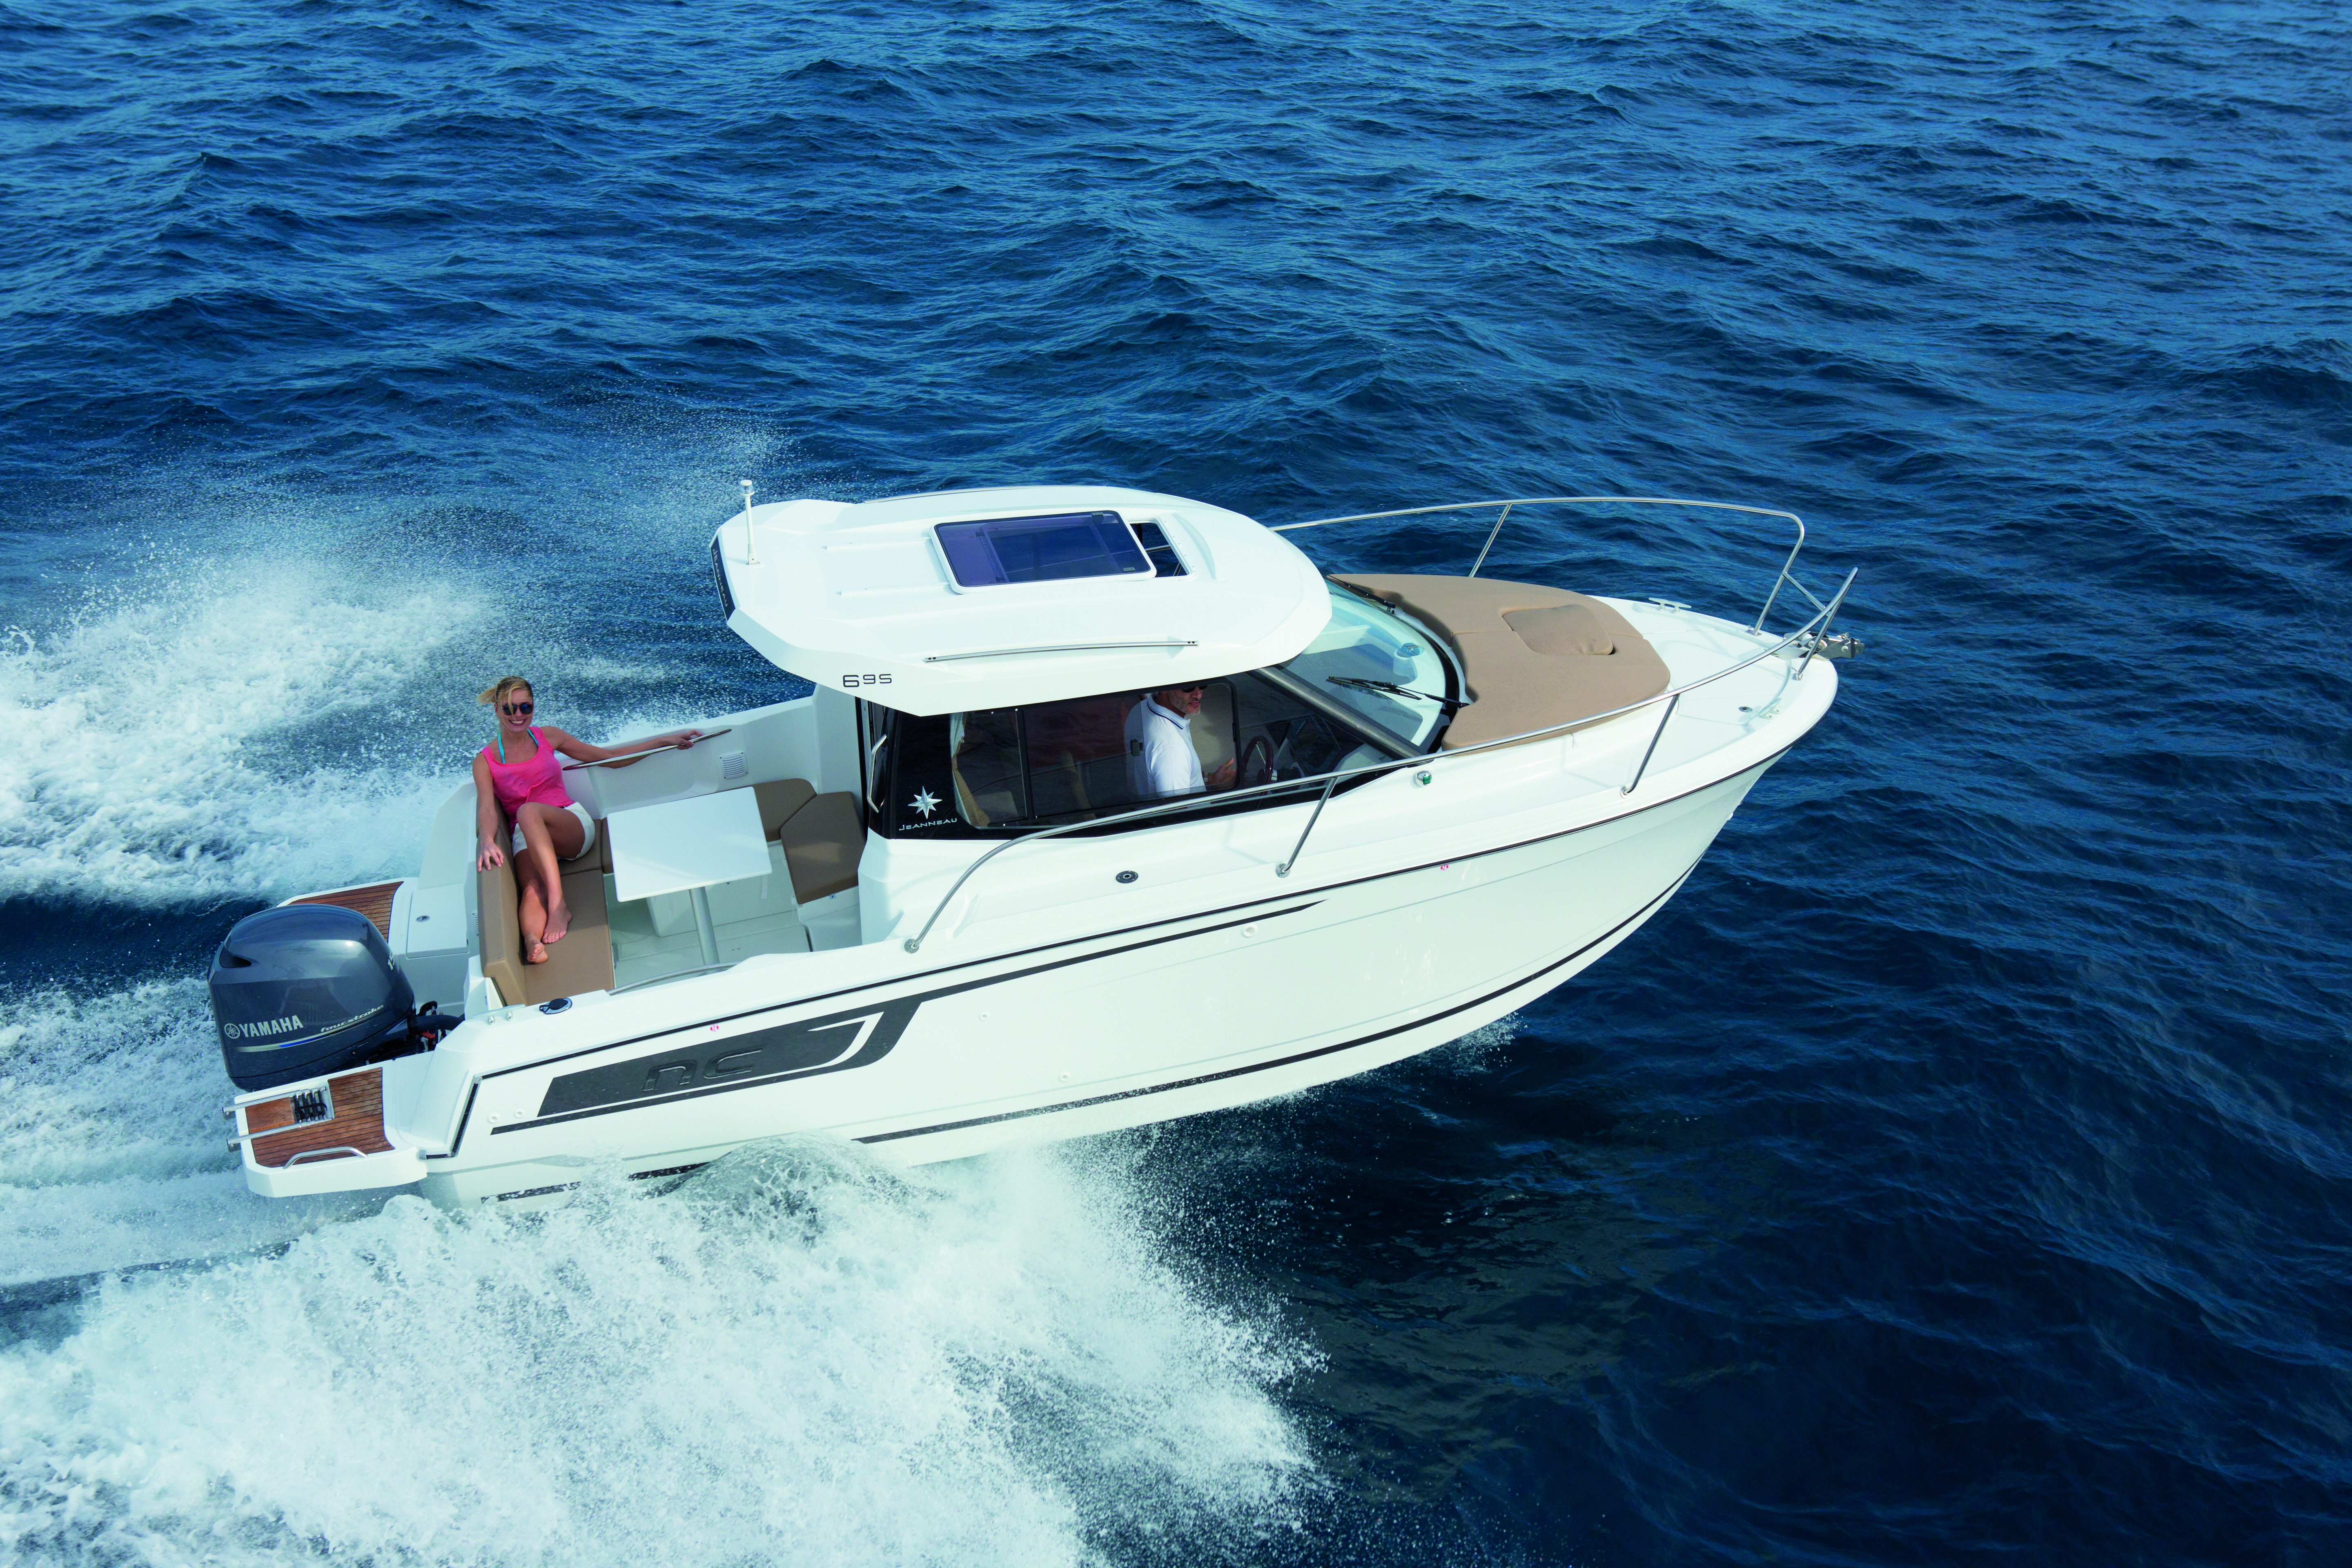 nautique boats sale cruisers yachts pre cruiser used ski wake boarding air xpreownedinventory cabin for cabins super surfing owned